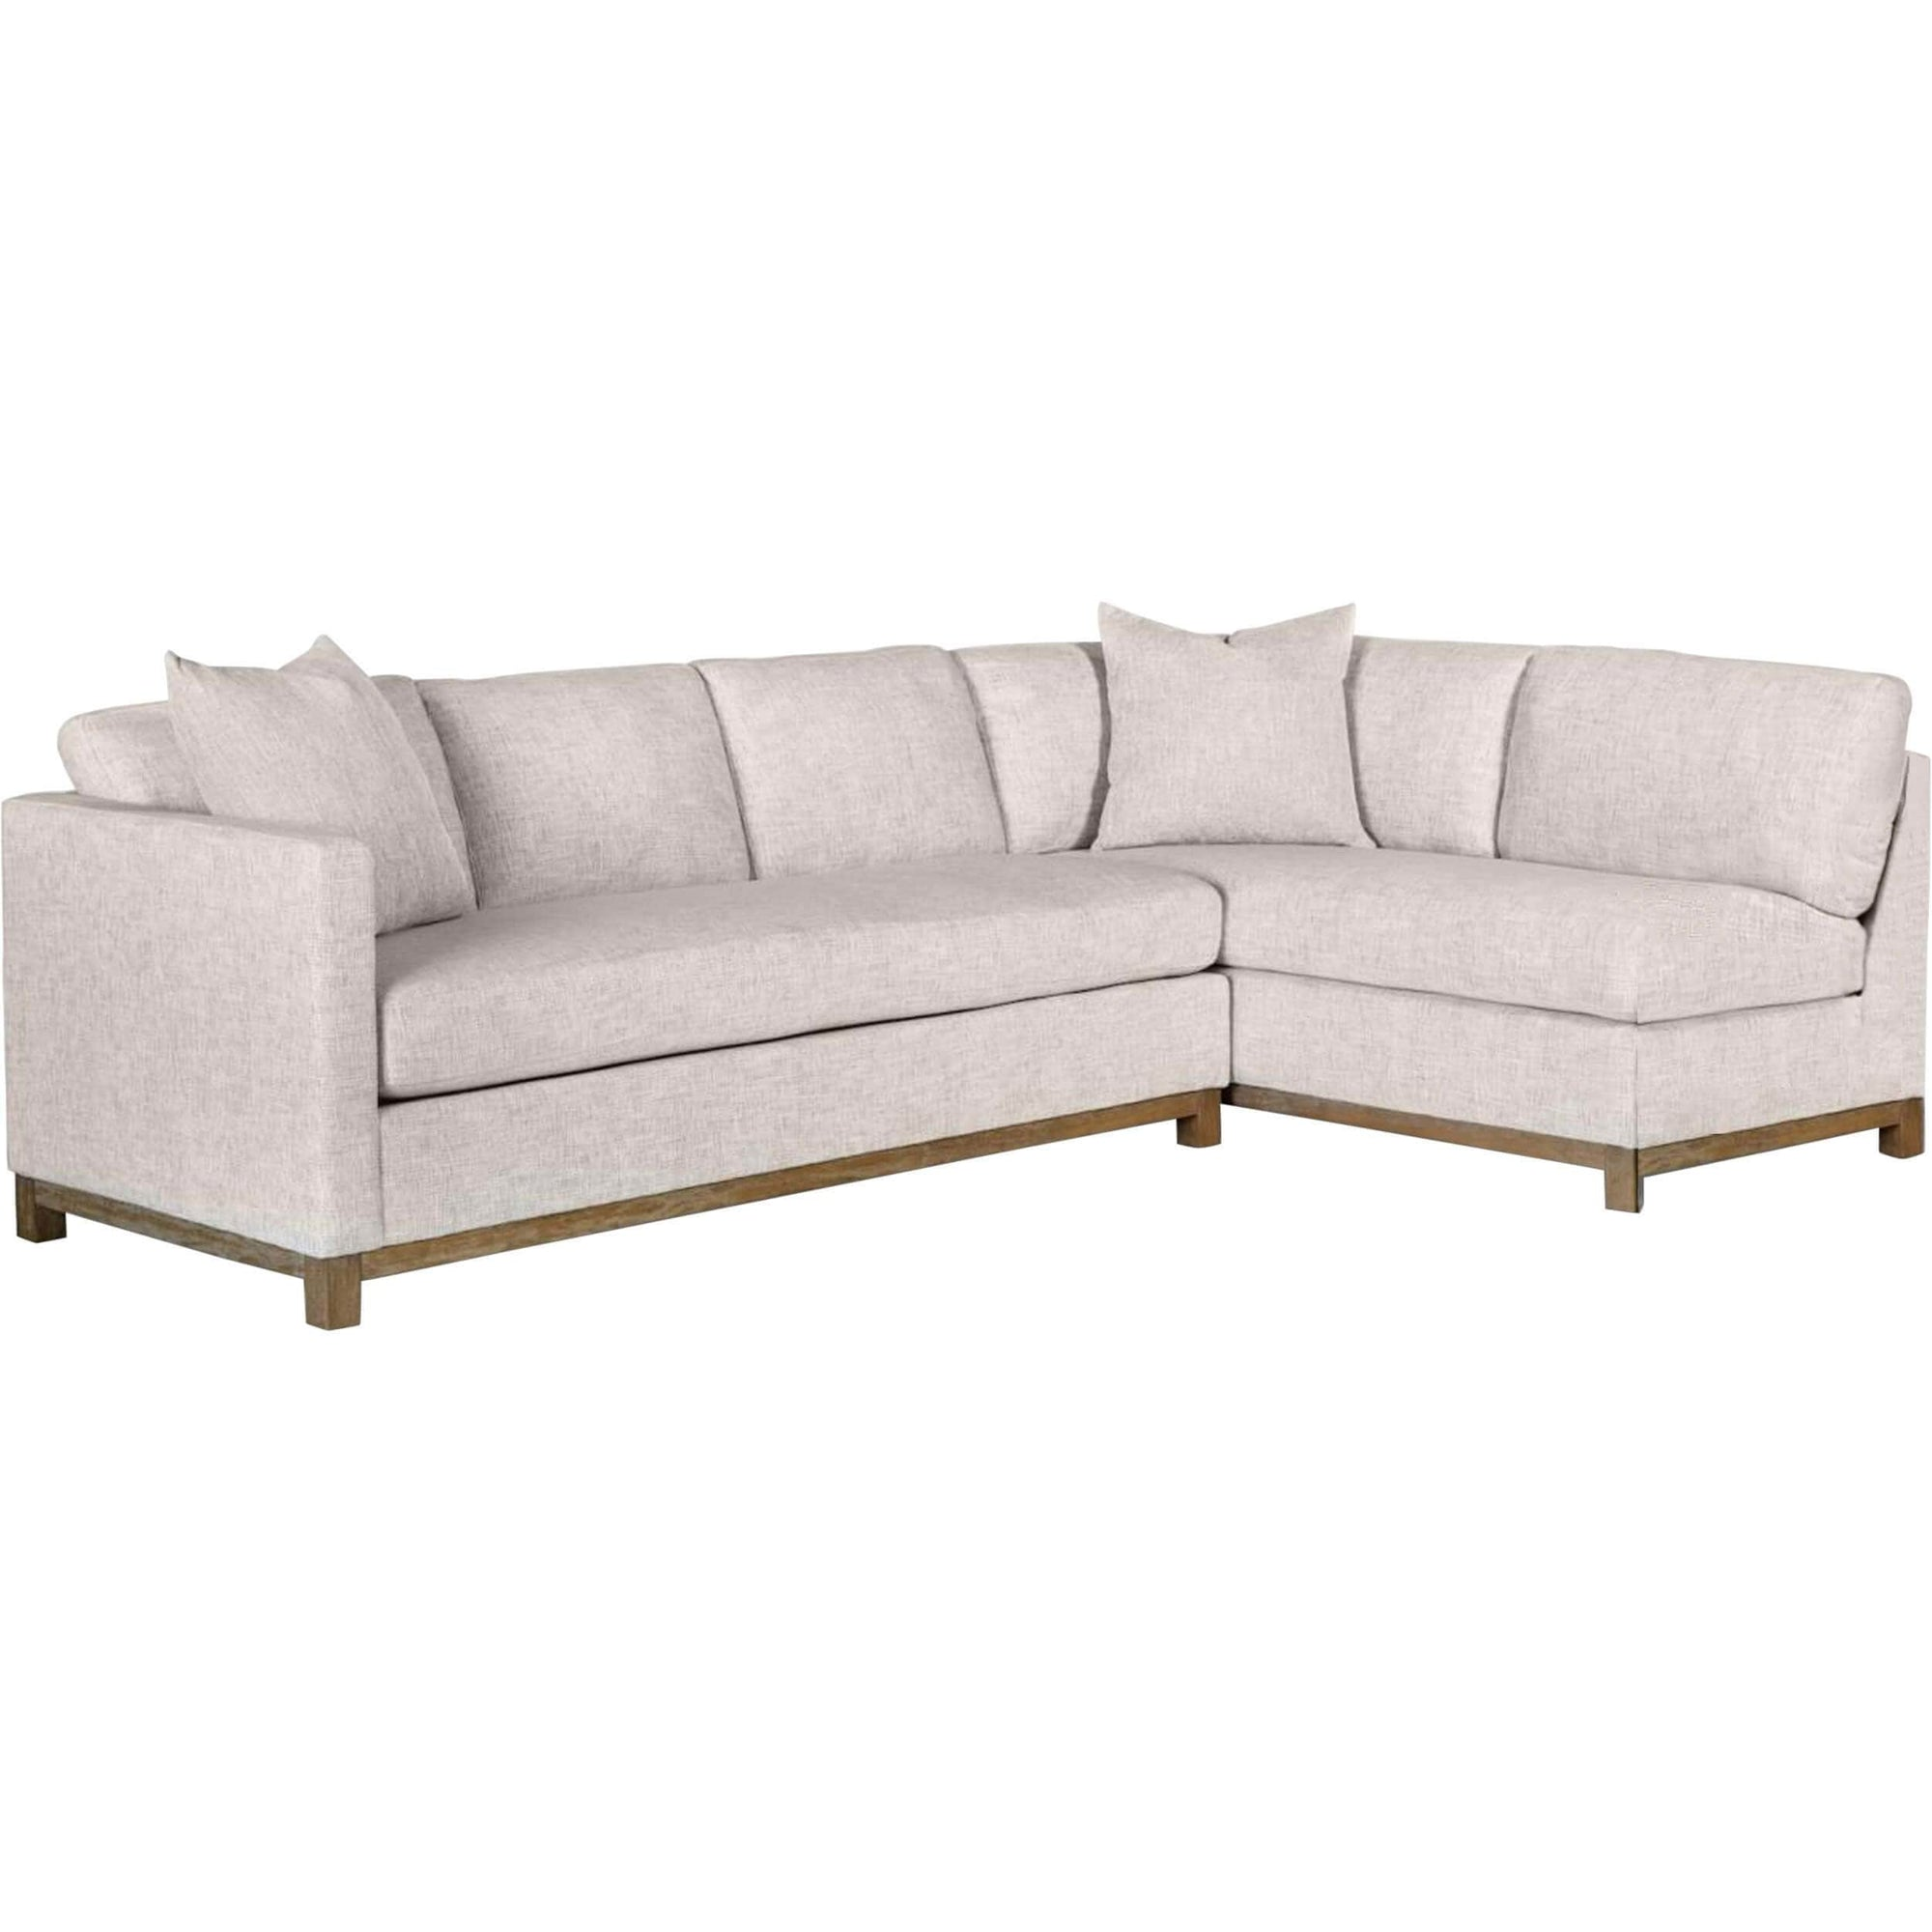 Miraculous Clayton Sectional Tweed Alabaster Bralicious Painted Fabric Chair Ideas Braliciousco